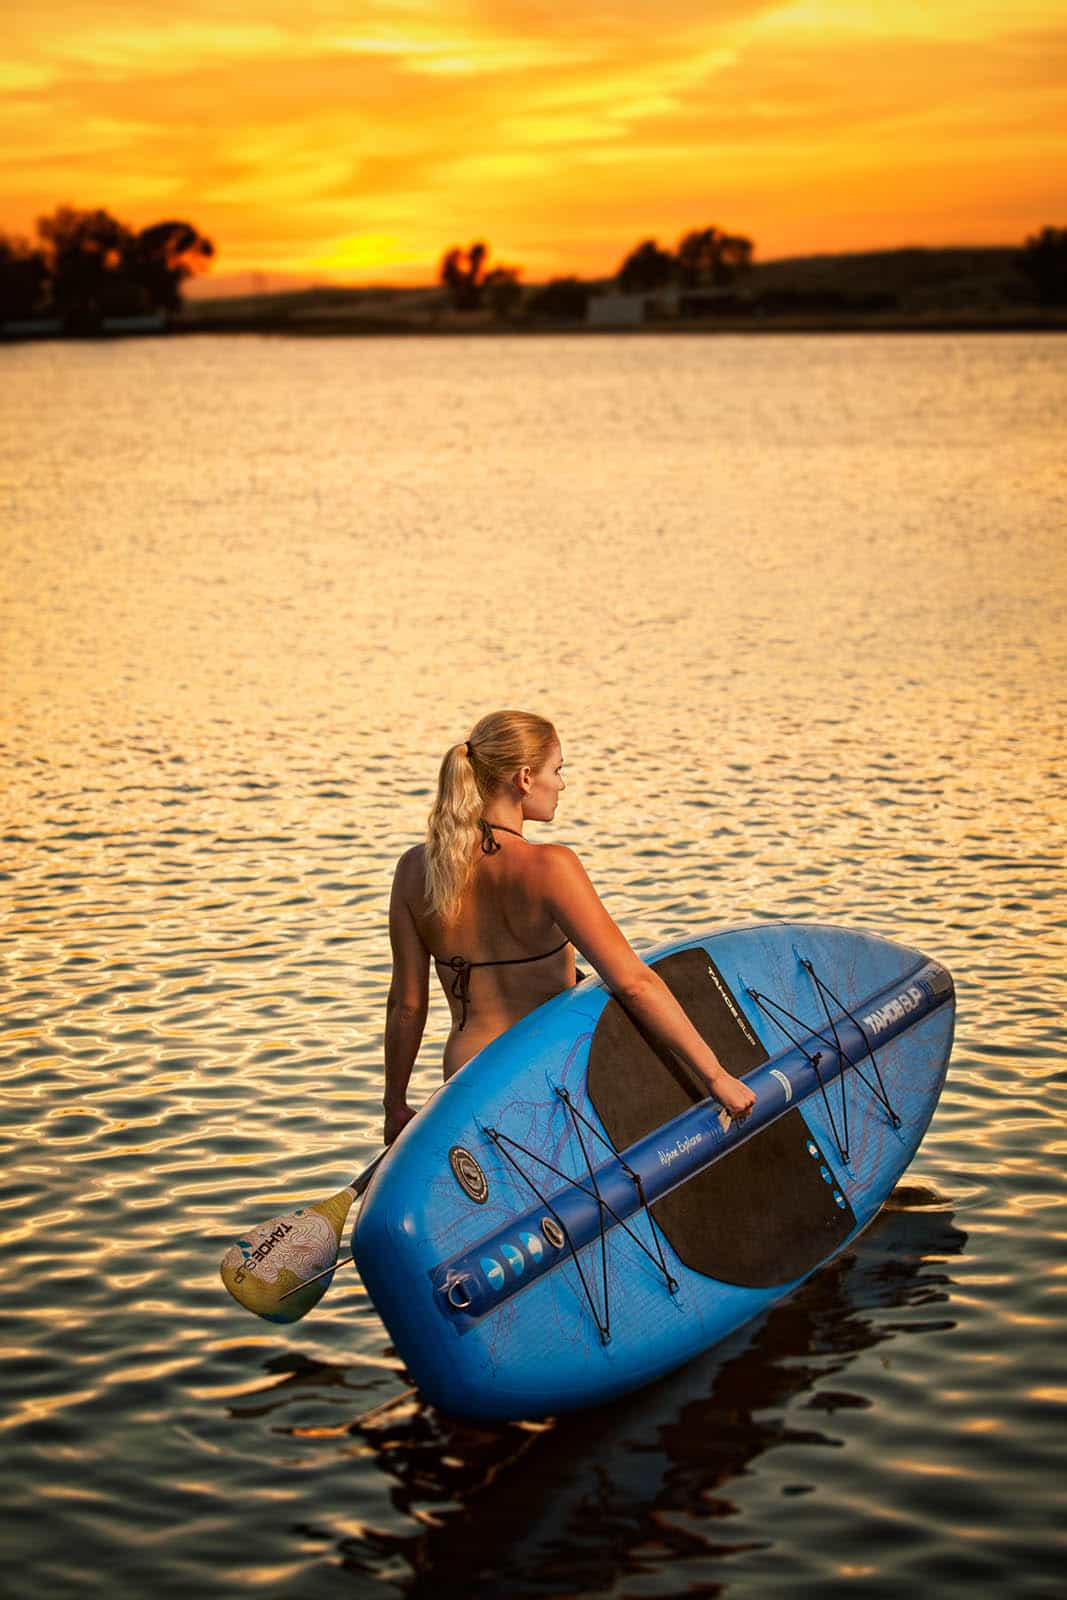 A young woman wading into a small lake with a paddle board at sunset.